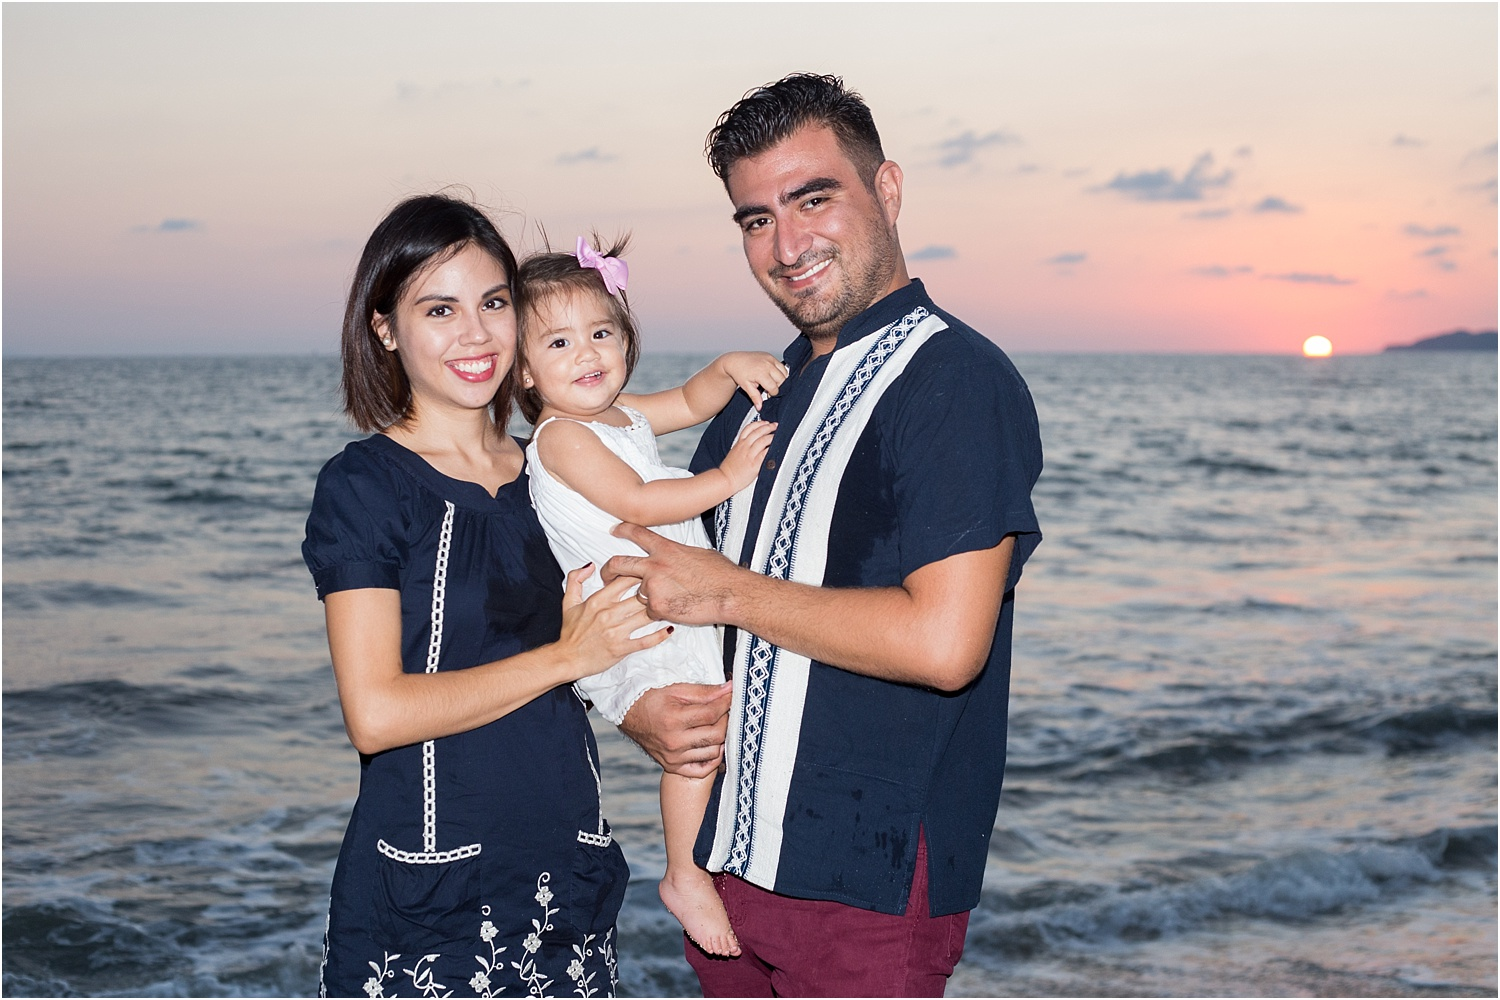 portrait of young family by the water - Using Flash for Beach Portraits